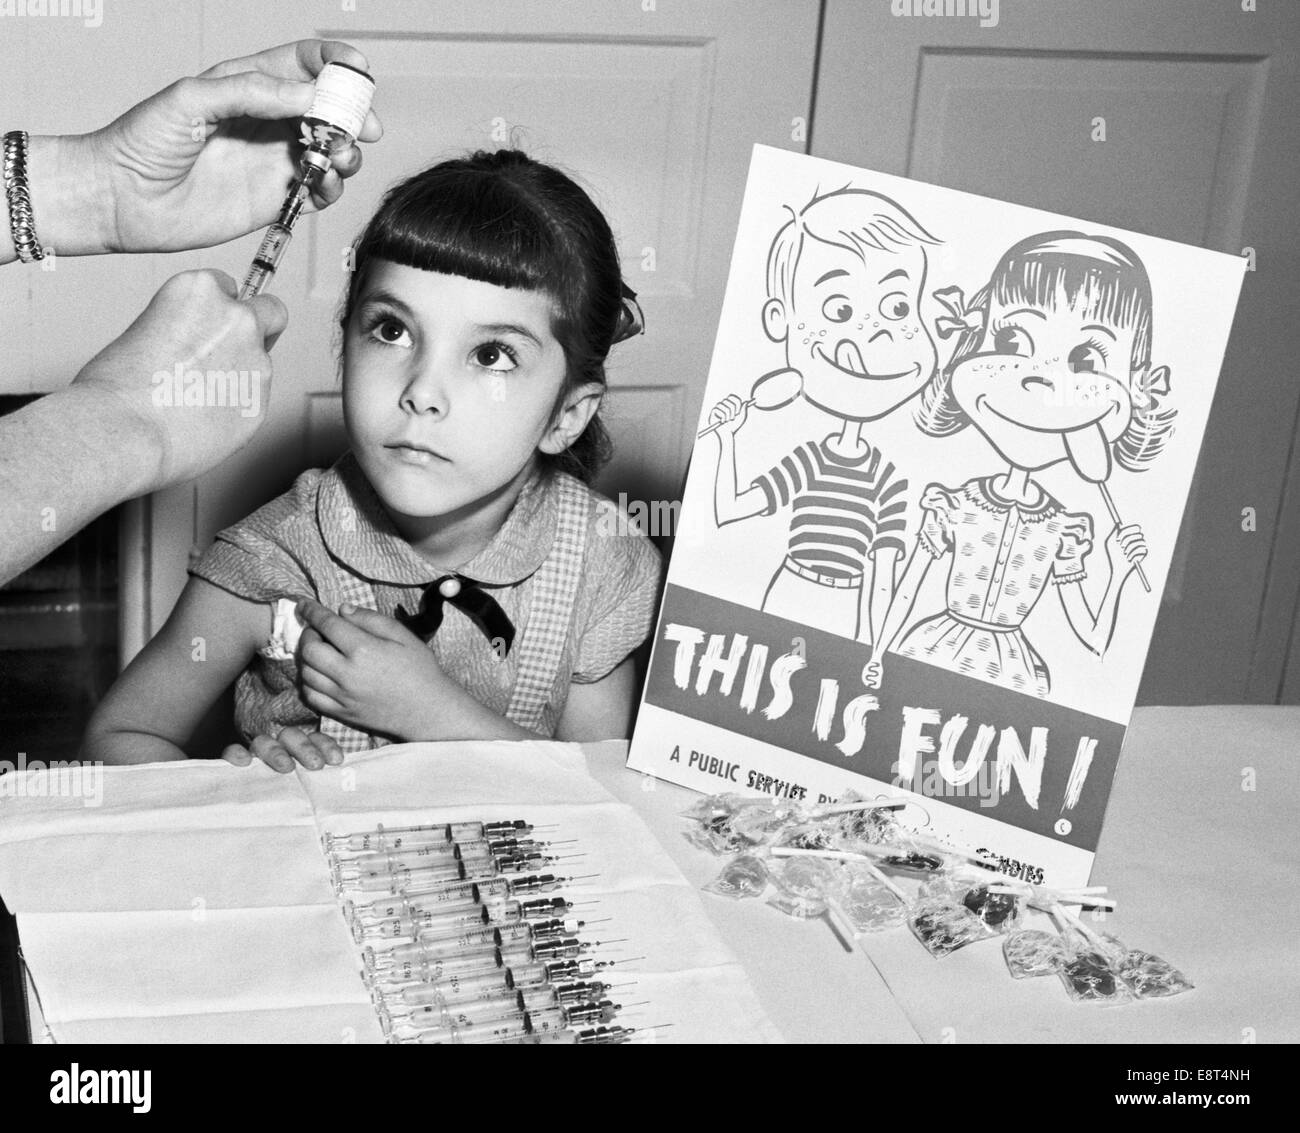 1950s LITTLE GIRL LOOKING UP ABOUT TO GET POLIO VACCINATION AT SCHOOL SIGN THIS IS FUN WITH LOLLIPOPS - Stock Image